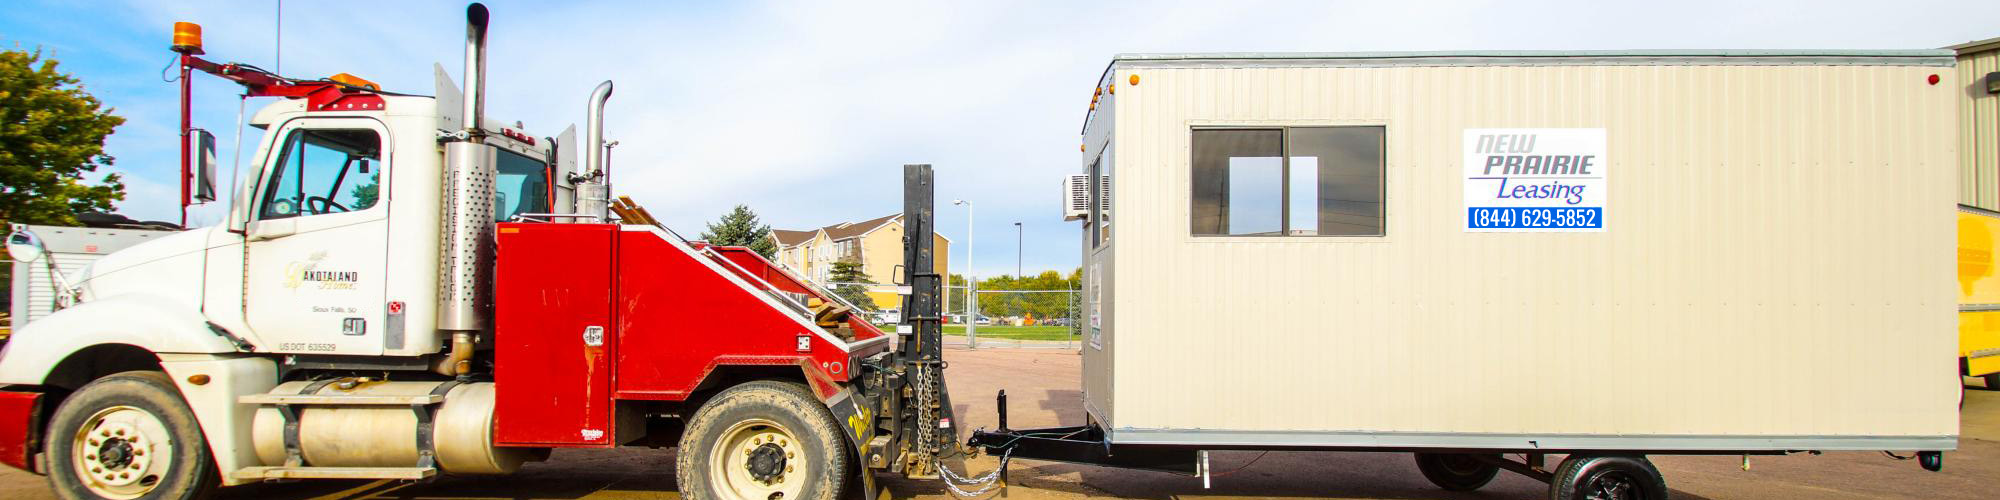 Office Trailer Rentals Mobile Construction Offices Sioux Falls Sd